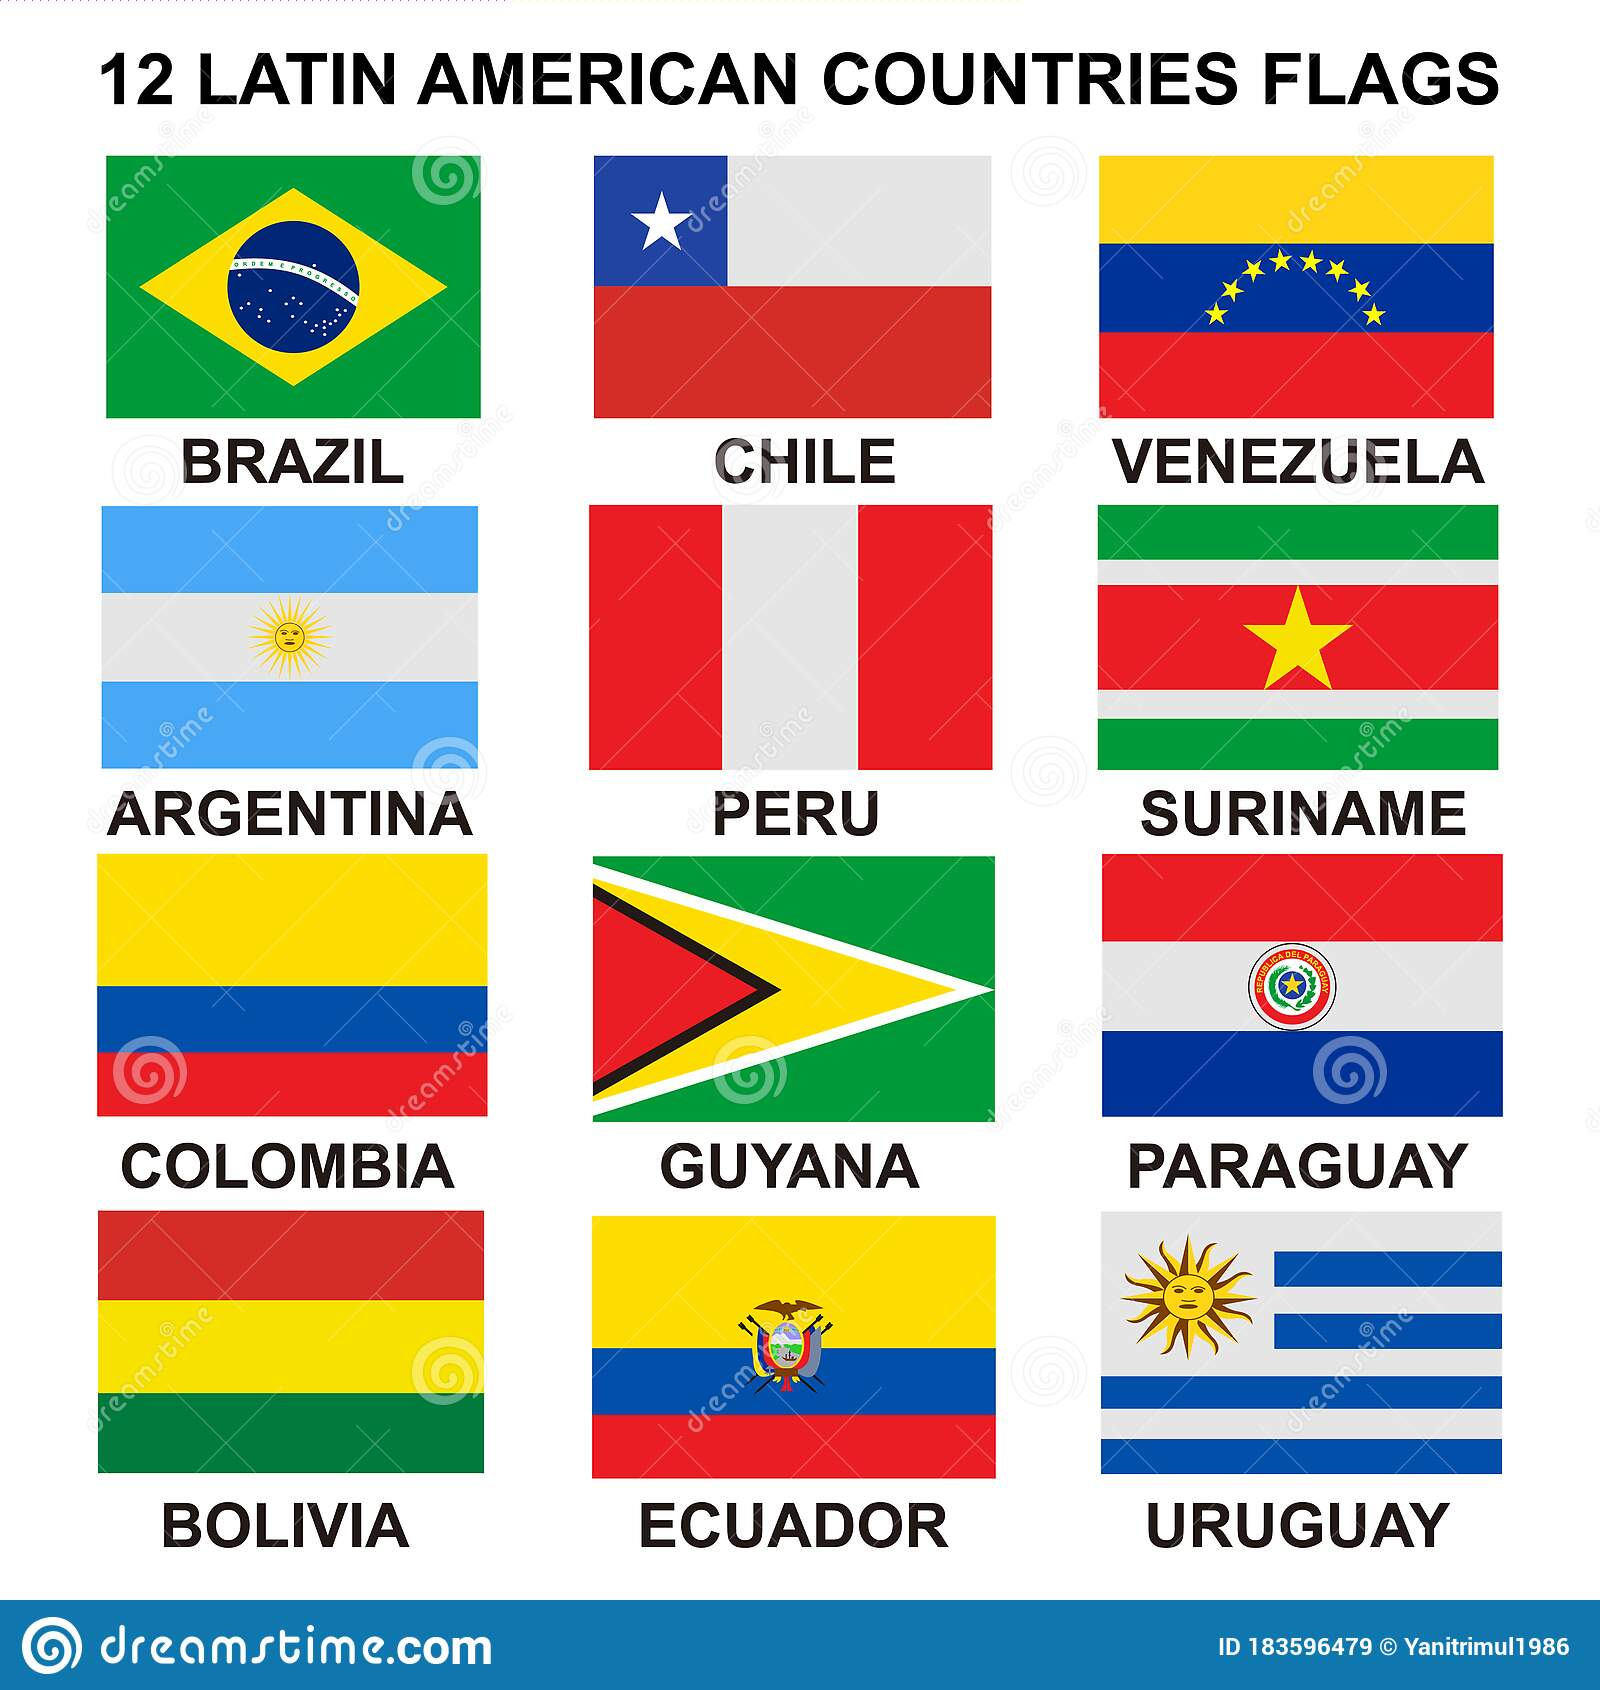 latin american countries the countries of south america central american countrie latin countries south america states richest country in south america poorest country in south america all countries in south america best countries to visit in south america south america largest country mexico latin america latin america country list latin america brazil costa rica in south america south america safest country canada is south america latin american independence most populated country in south america latin america and south america things to do in south america poorest country in central america uruguay south america colombia latin america all latin countries slavery in latin america poorest country in latin america richest country in latin america best country to live in south america latin countries list peru latin america most populous country in south america richest country in central america chile latin america paraguay south america seterra latin america largest country in latin america latin america south america latin america and caribbean countries central and south america countries central america and south america costa rica latin america best country in latin america smallest country in latin america best countries to visit in central america latin american nations all countries in latin america south america independence latin america and central america cuba in south america developing countries in south america central america countries list latin american independence day nations in south america central america and caribbean countries mexico and south america name of south america countries number of country in south america caribbean and latin america best country south america south america guatemala central america south america countries included in latin america safest country latin america latin america haiti countries in south america to visit best countries in latin america to visit wealthiest country in south america south america total co